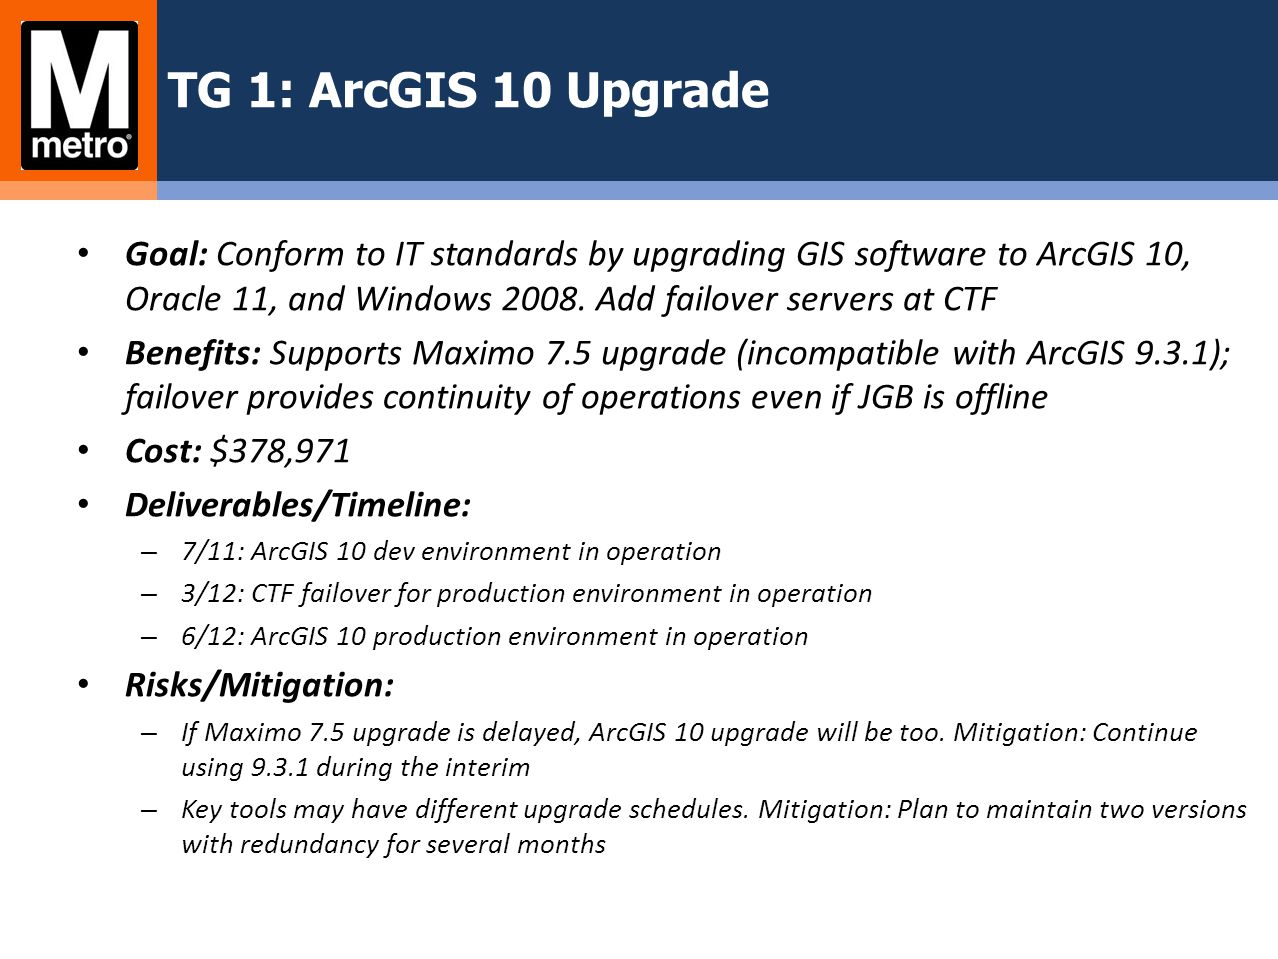 TG 1: ArcGIS 10 Upgrade Goal: Conform to IT standards by upgrading GIS software to ArcGIS 10, Oracle 11, and Windows 2008. Add failover servers at CTF